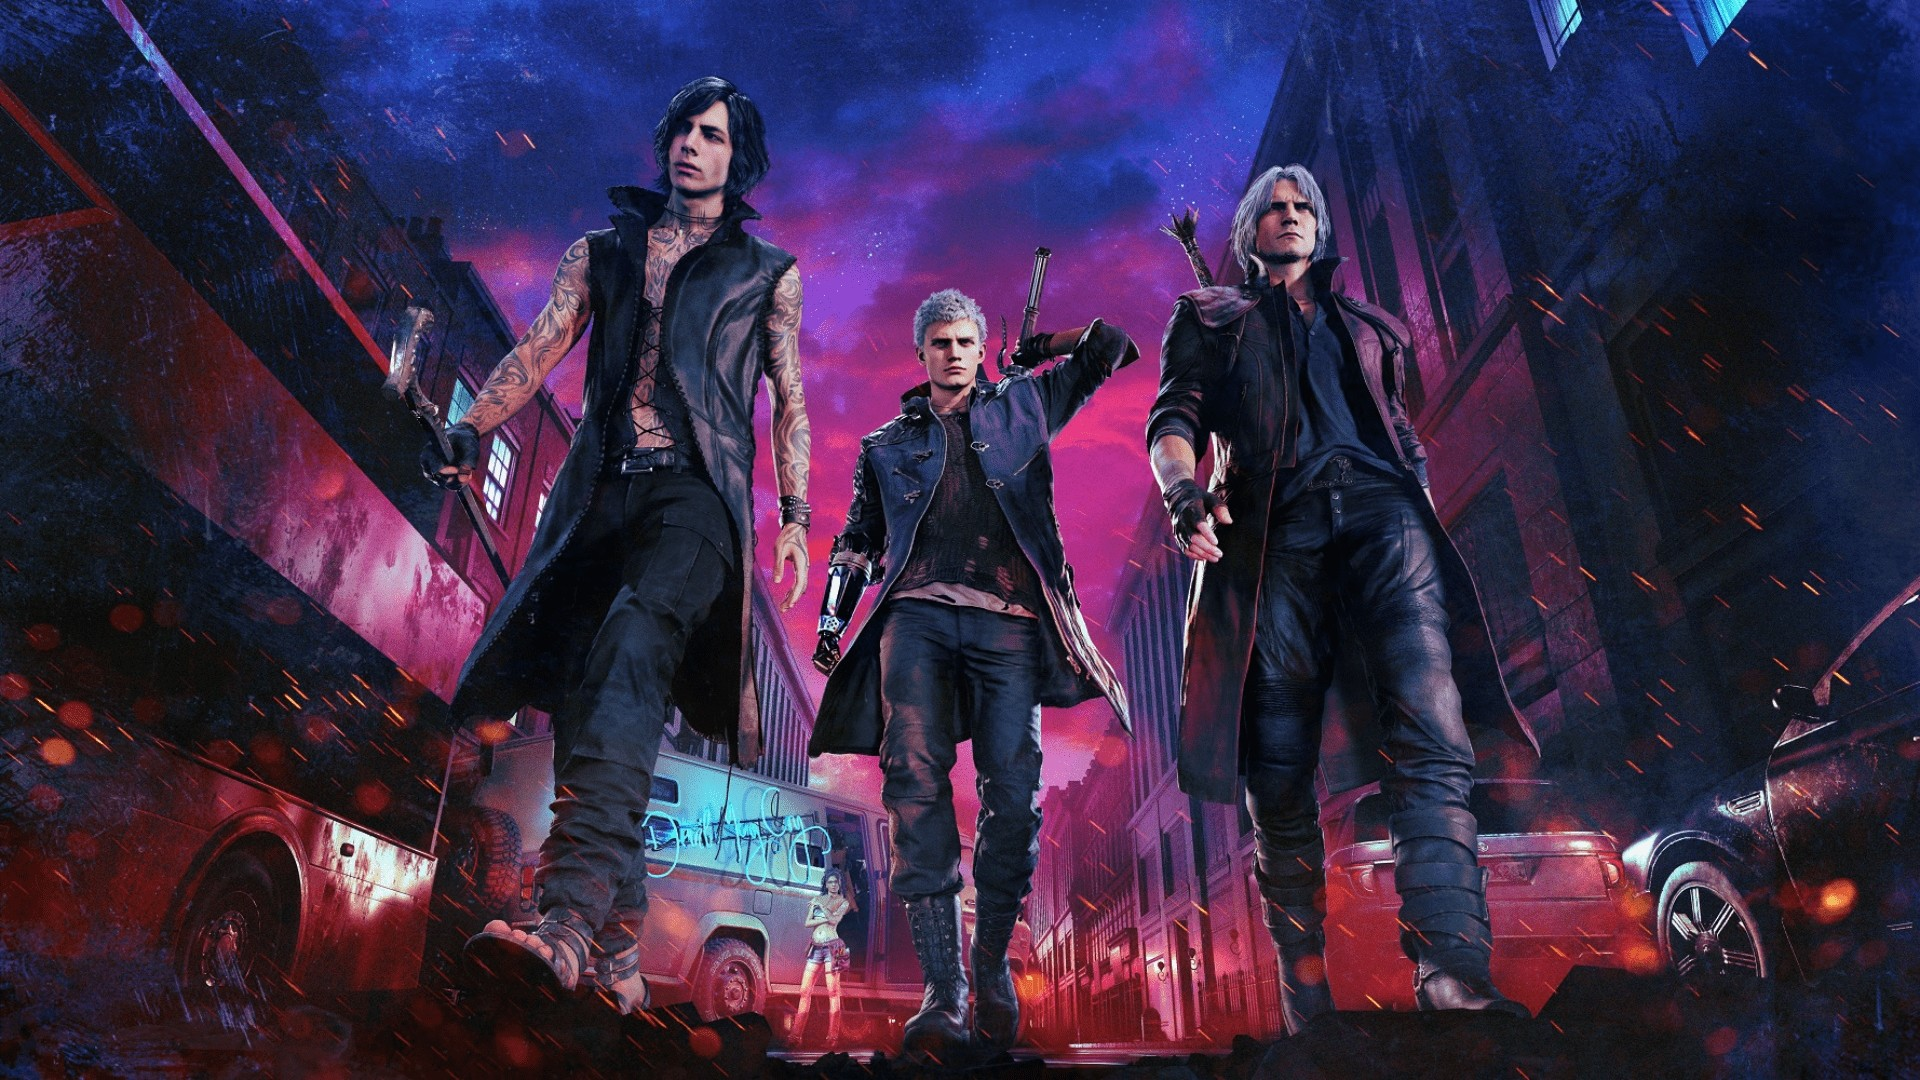 Devil May Cry vertical wallpaper hd